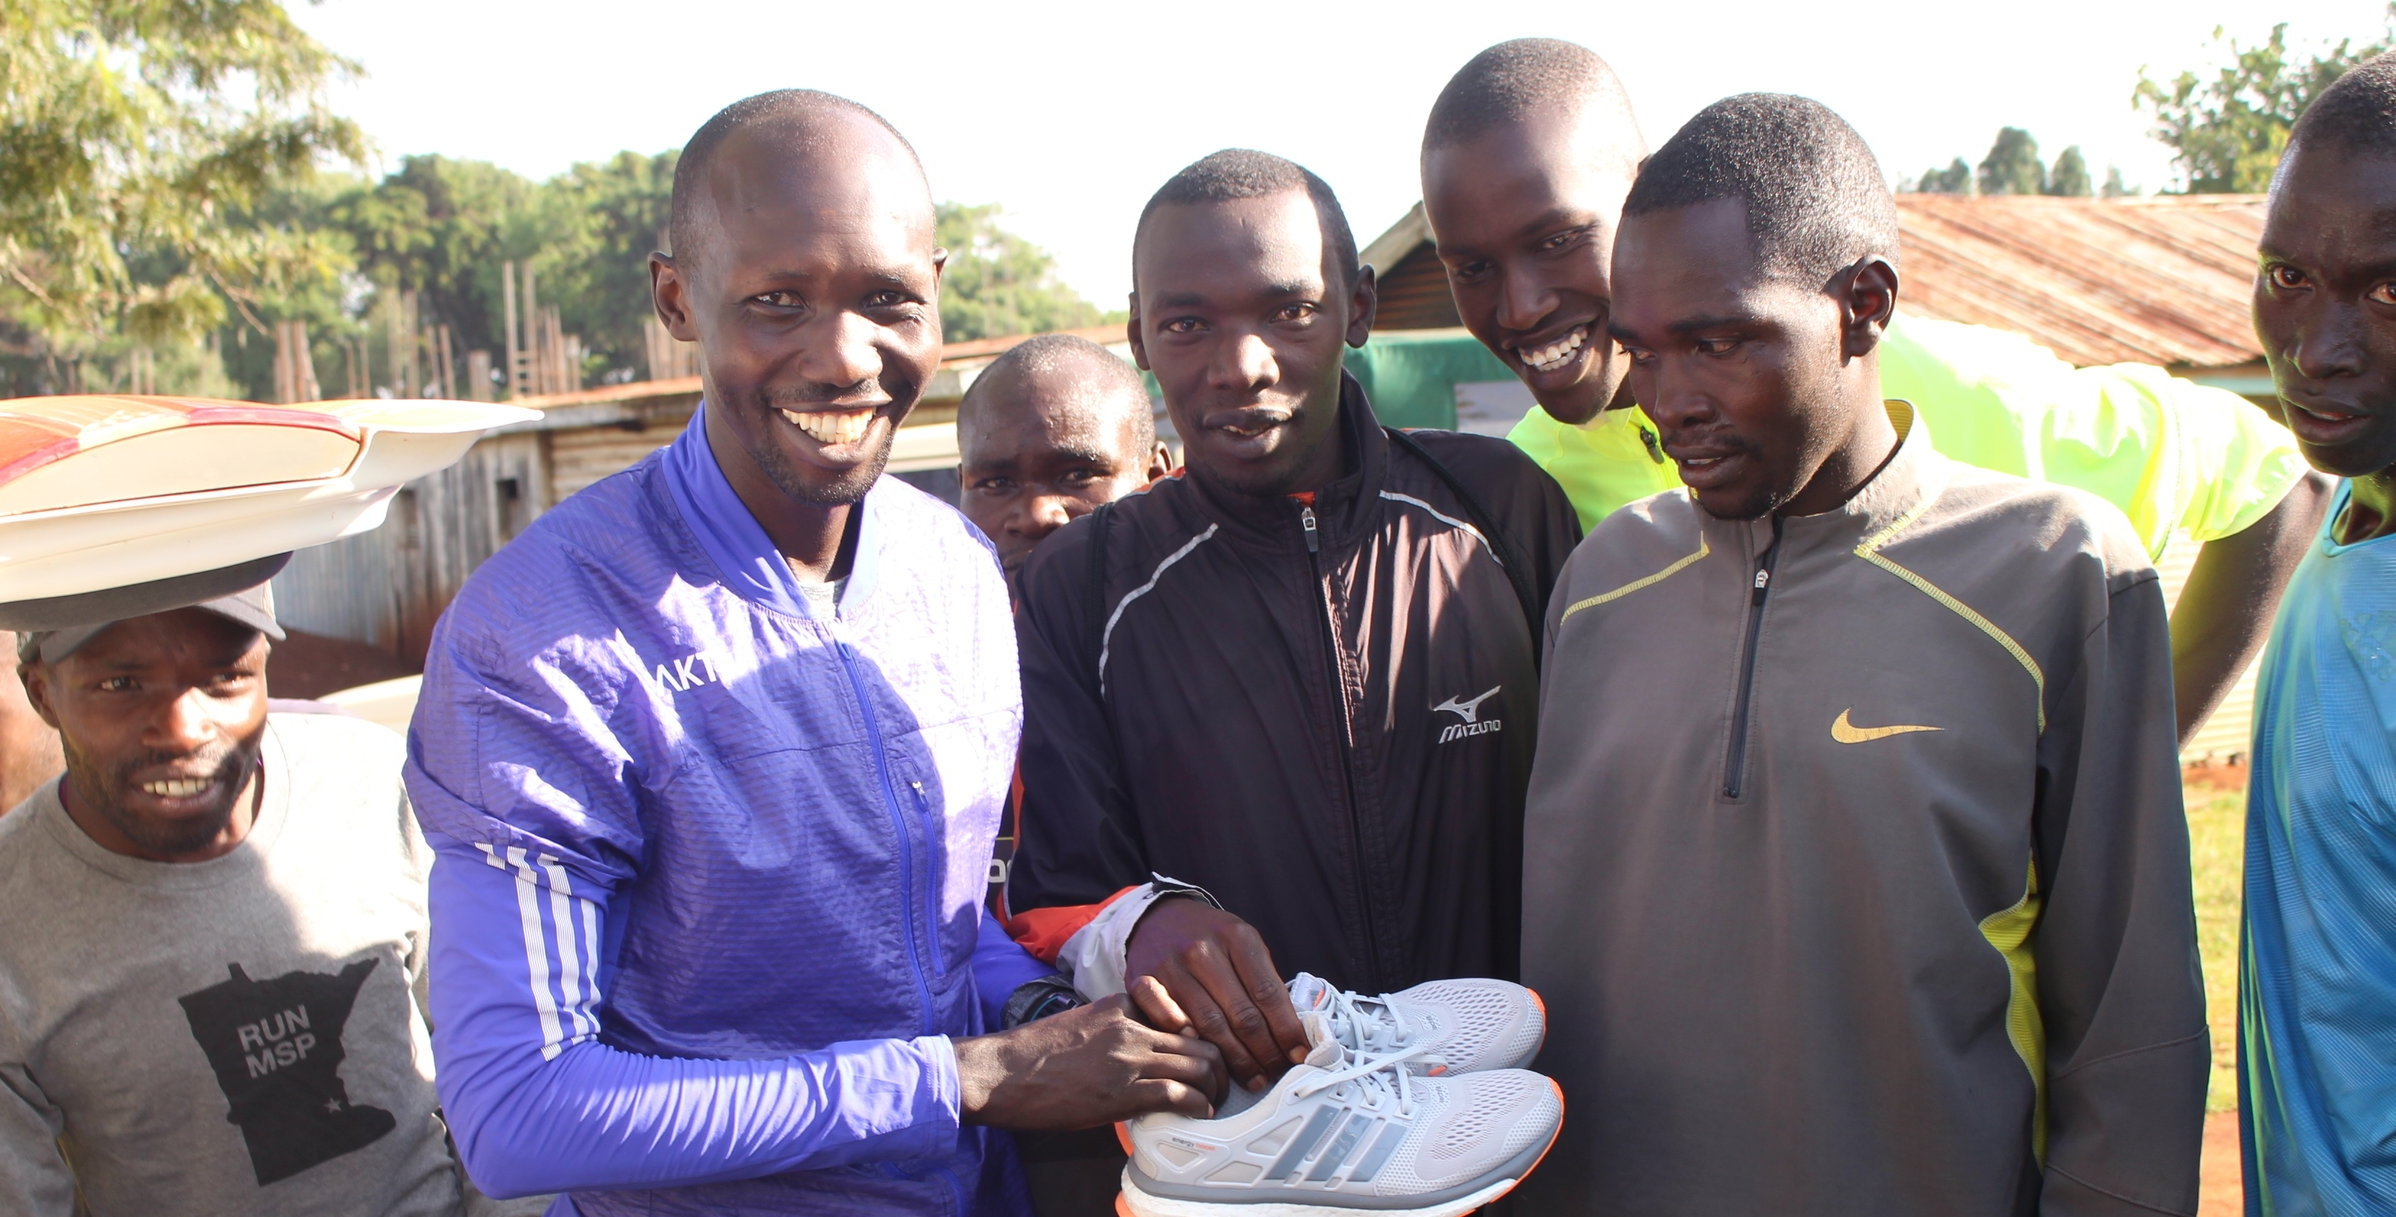 Wilson Kipsang Helps to Distribute Shoes